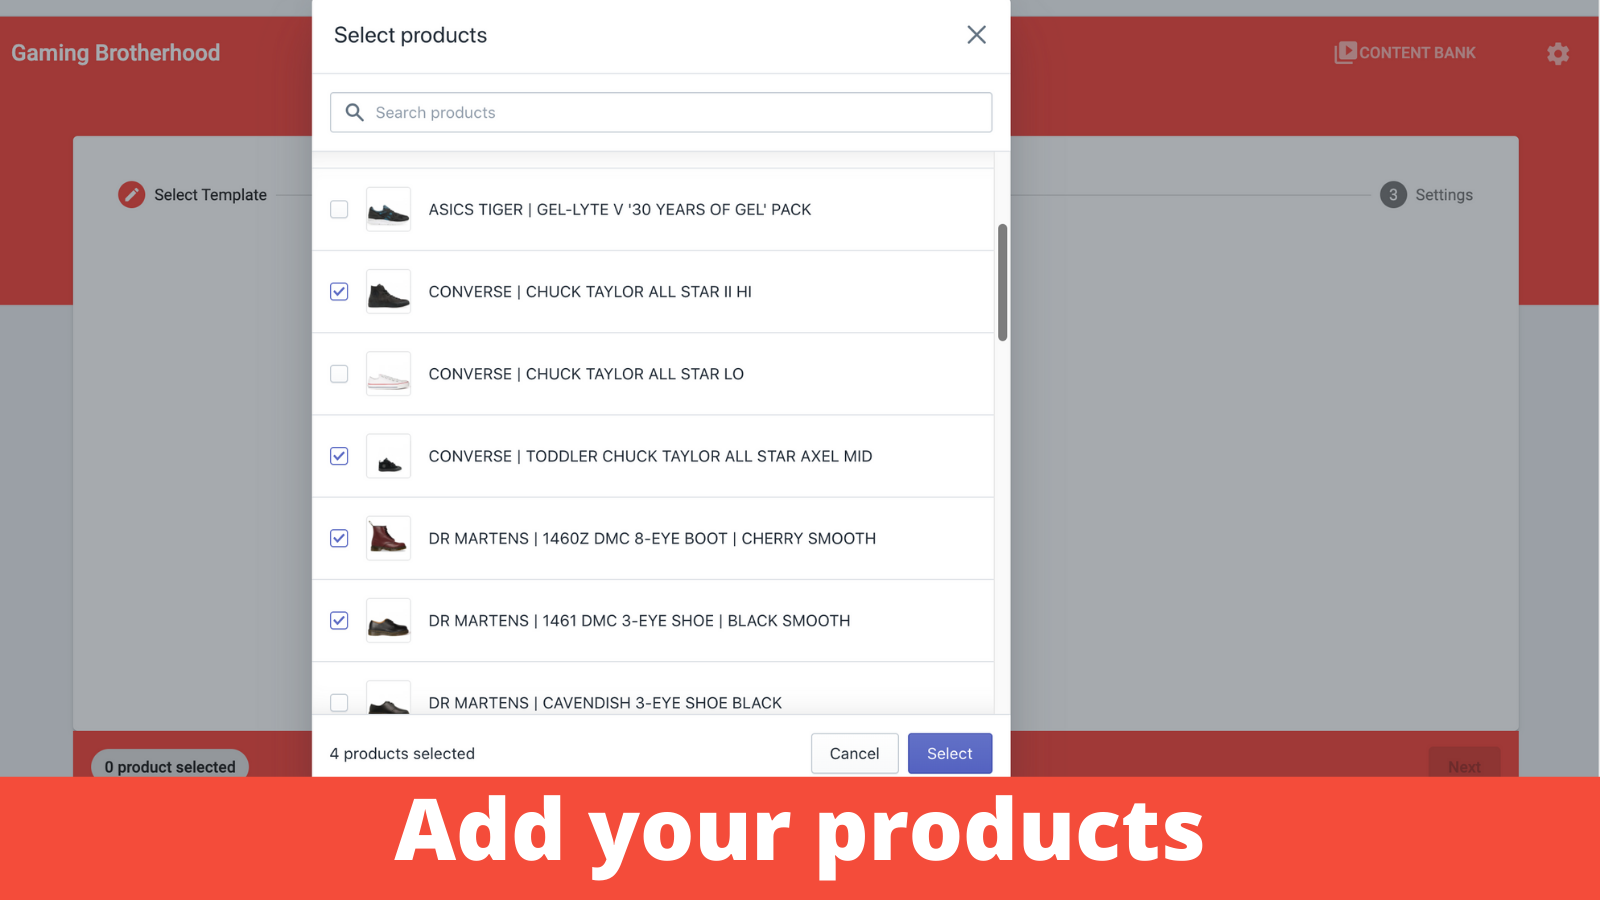 Add your products